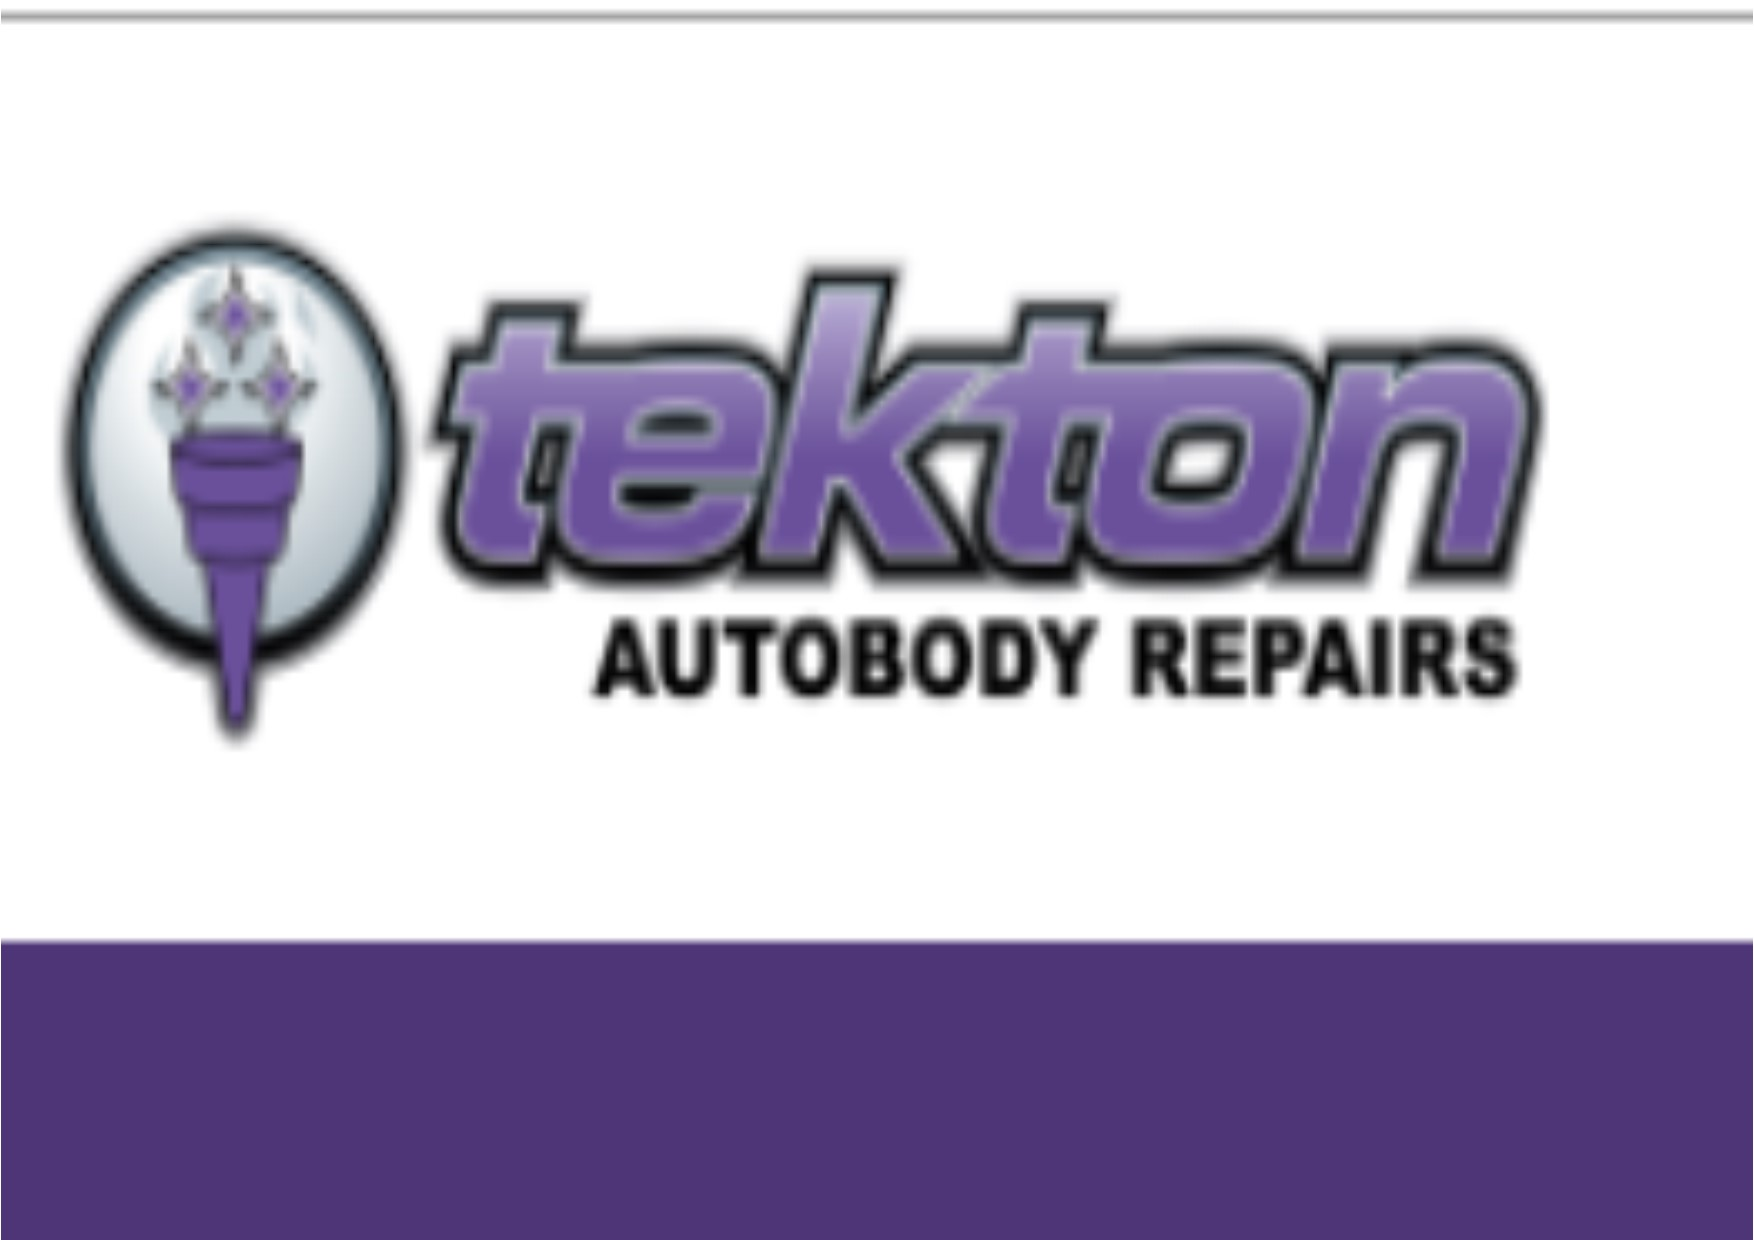 Tekton Group